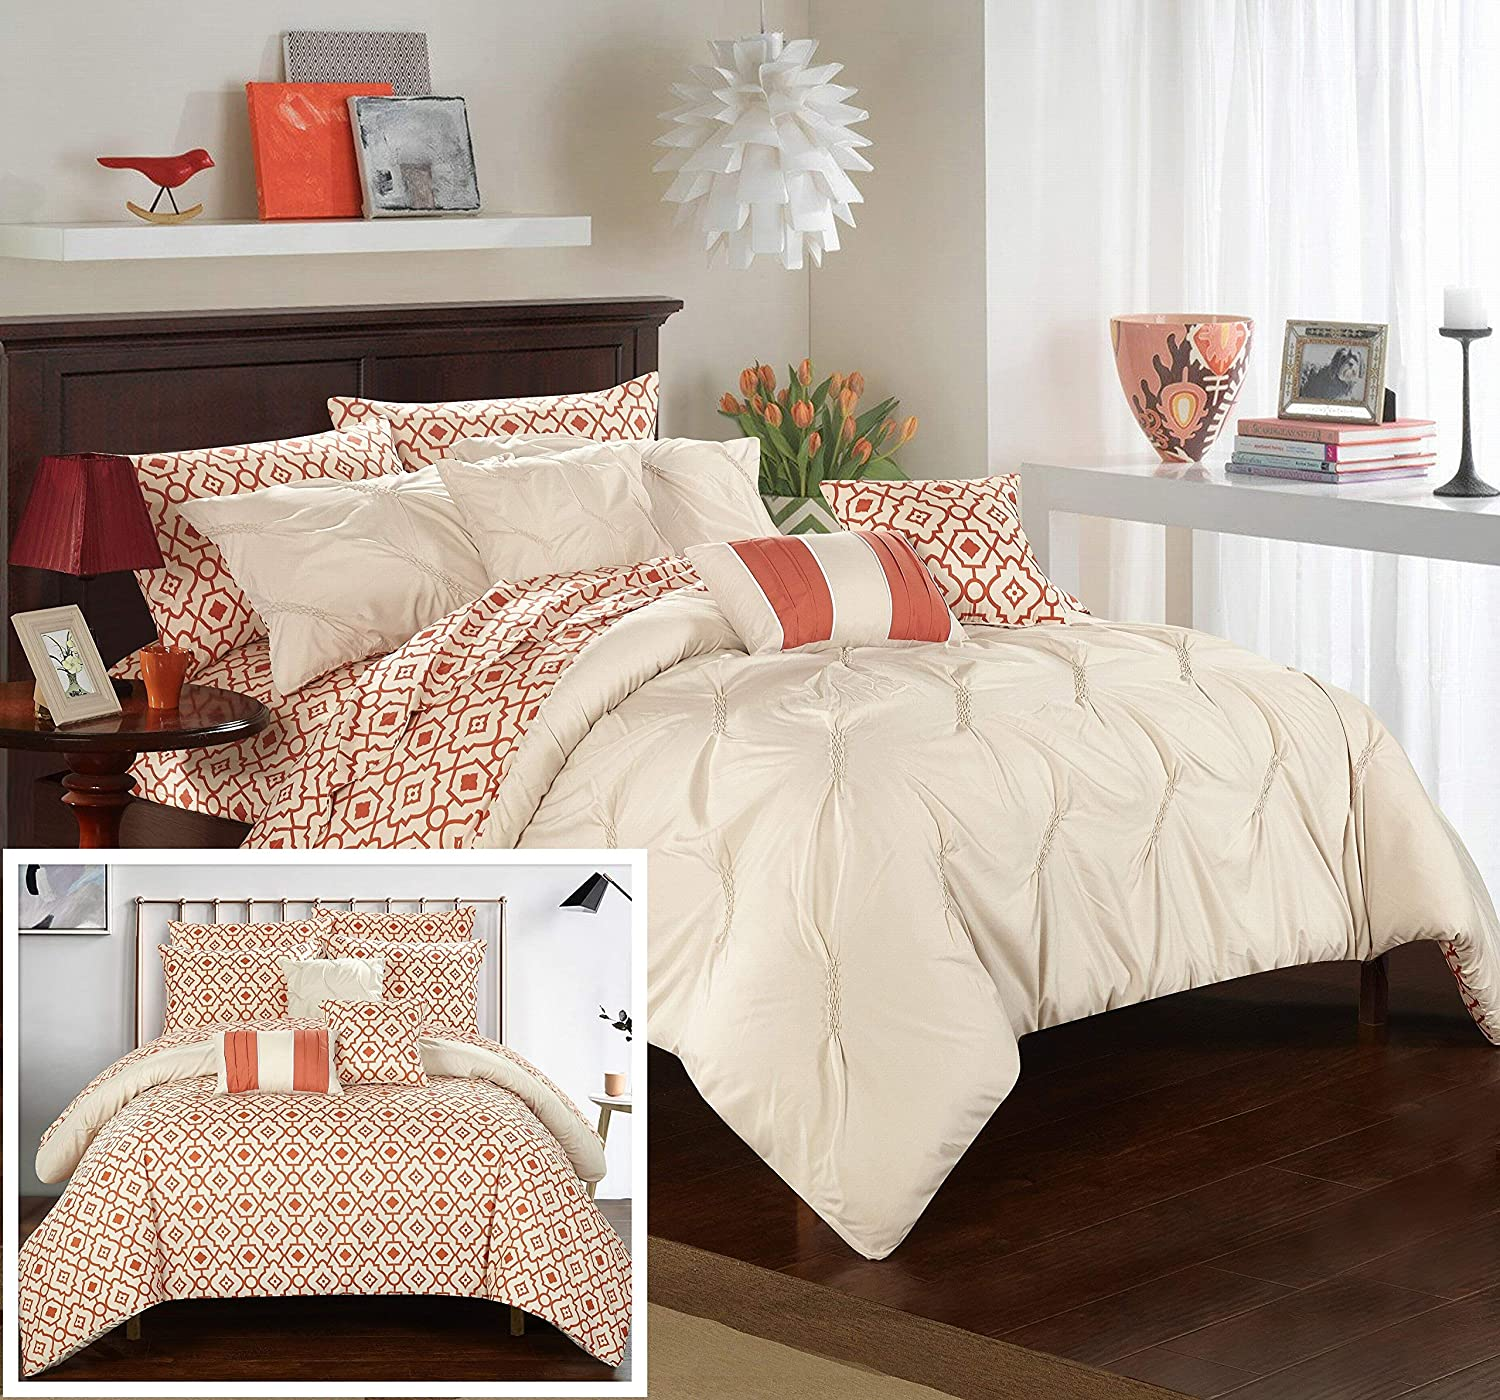 Chic Home 10 Piece Sabrina Pinch, Ruffled and Pleated Printed Reversible Complete Queen Bed in a Bag Comforter Beige with Sheet Set